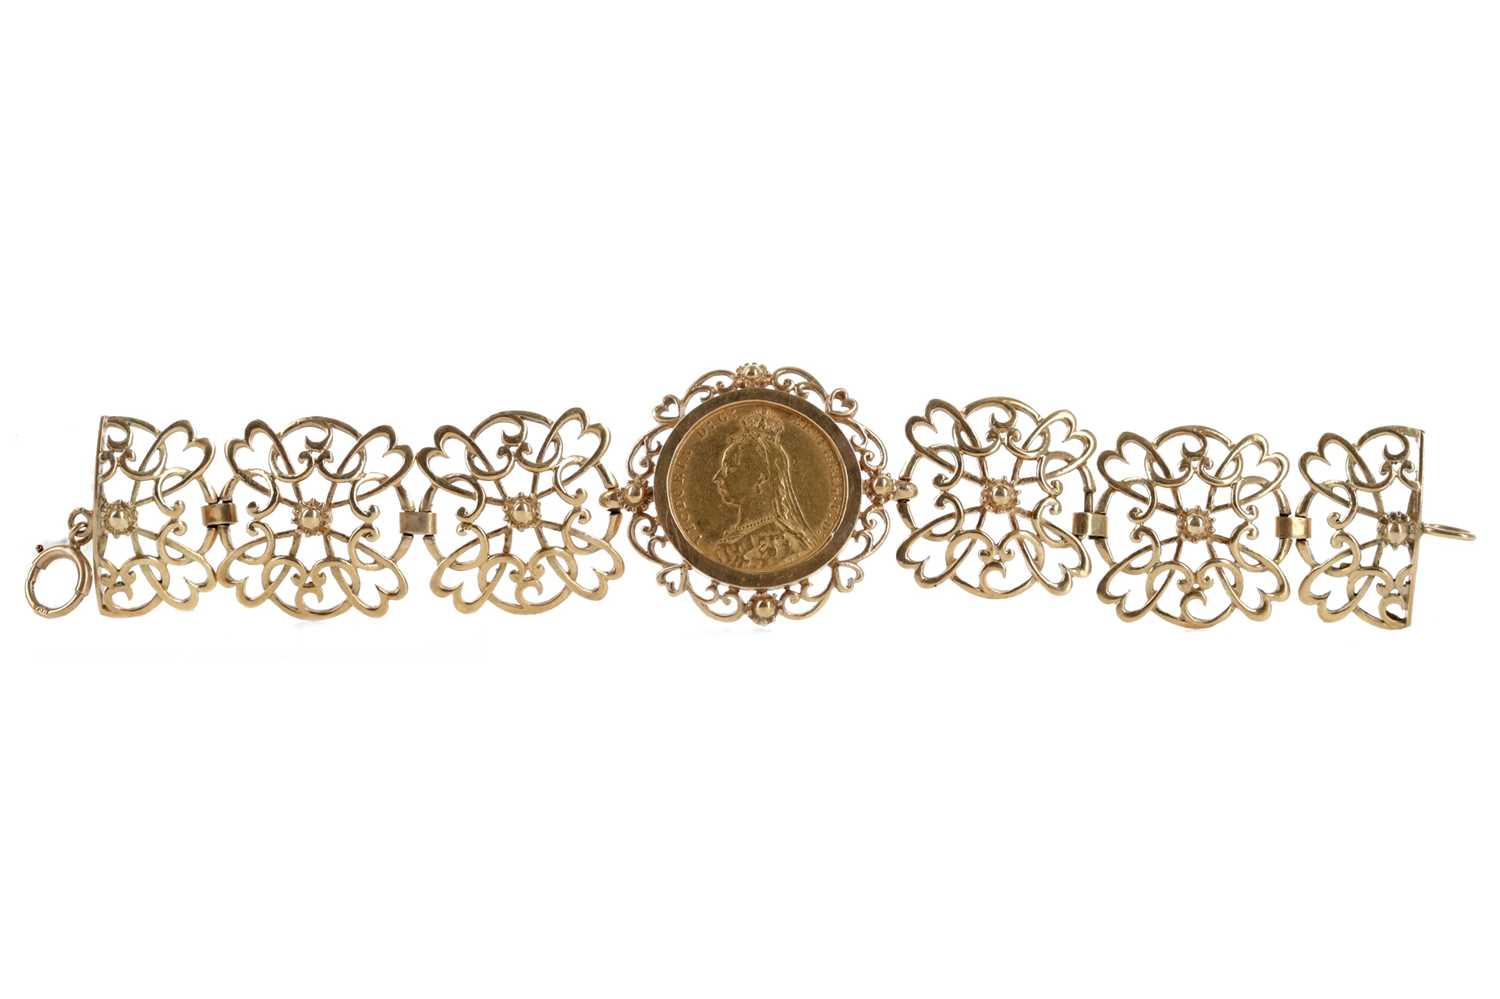 Lot 46 - A GOLD SOVEREIGN MOUNTED IN A BRACELET